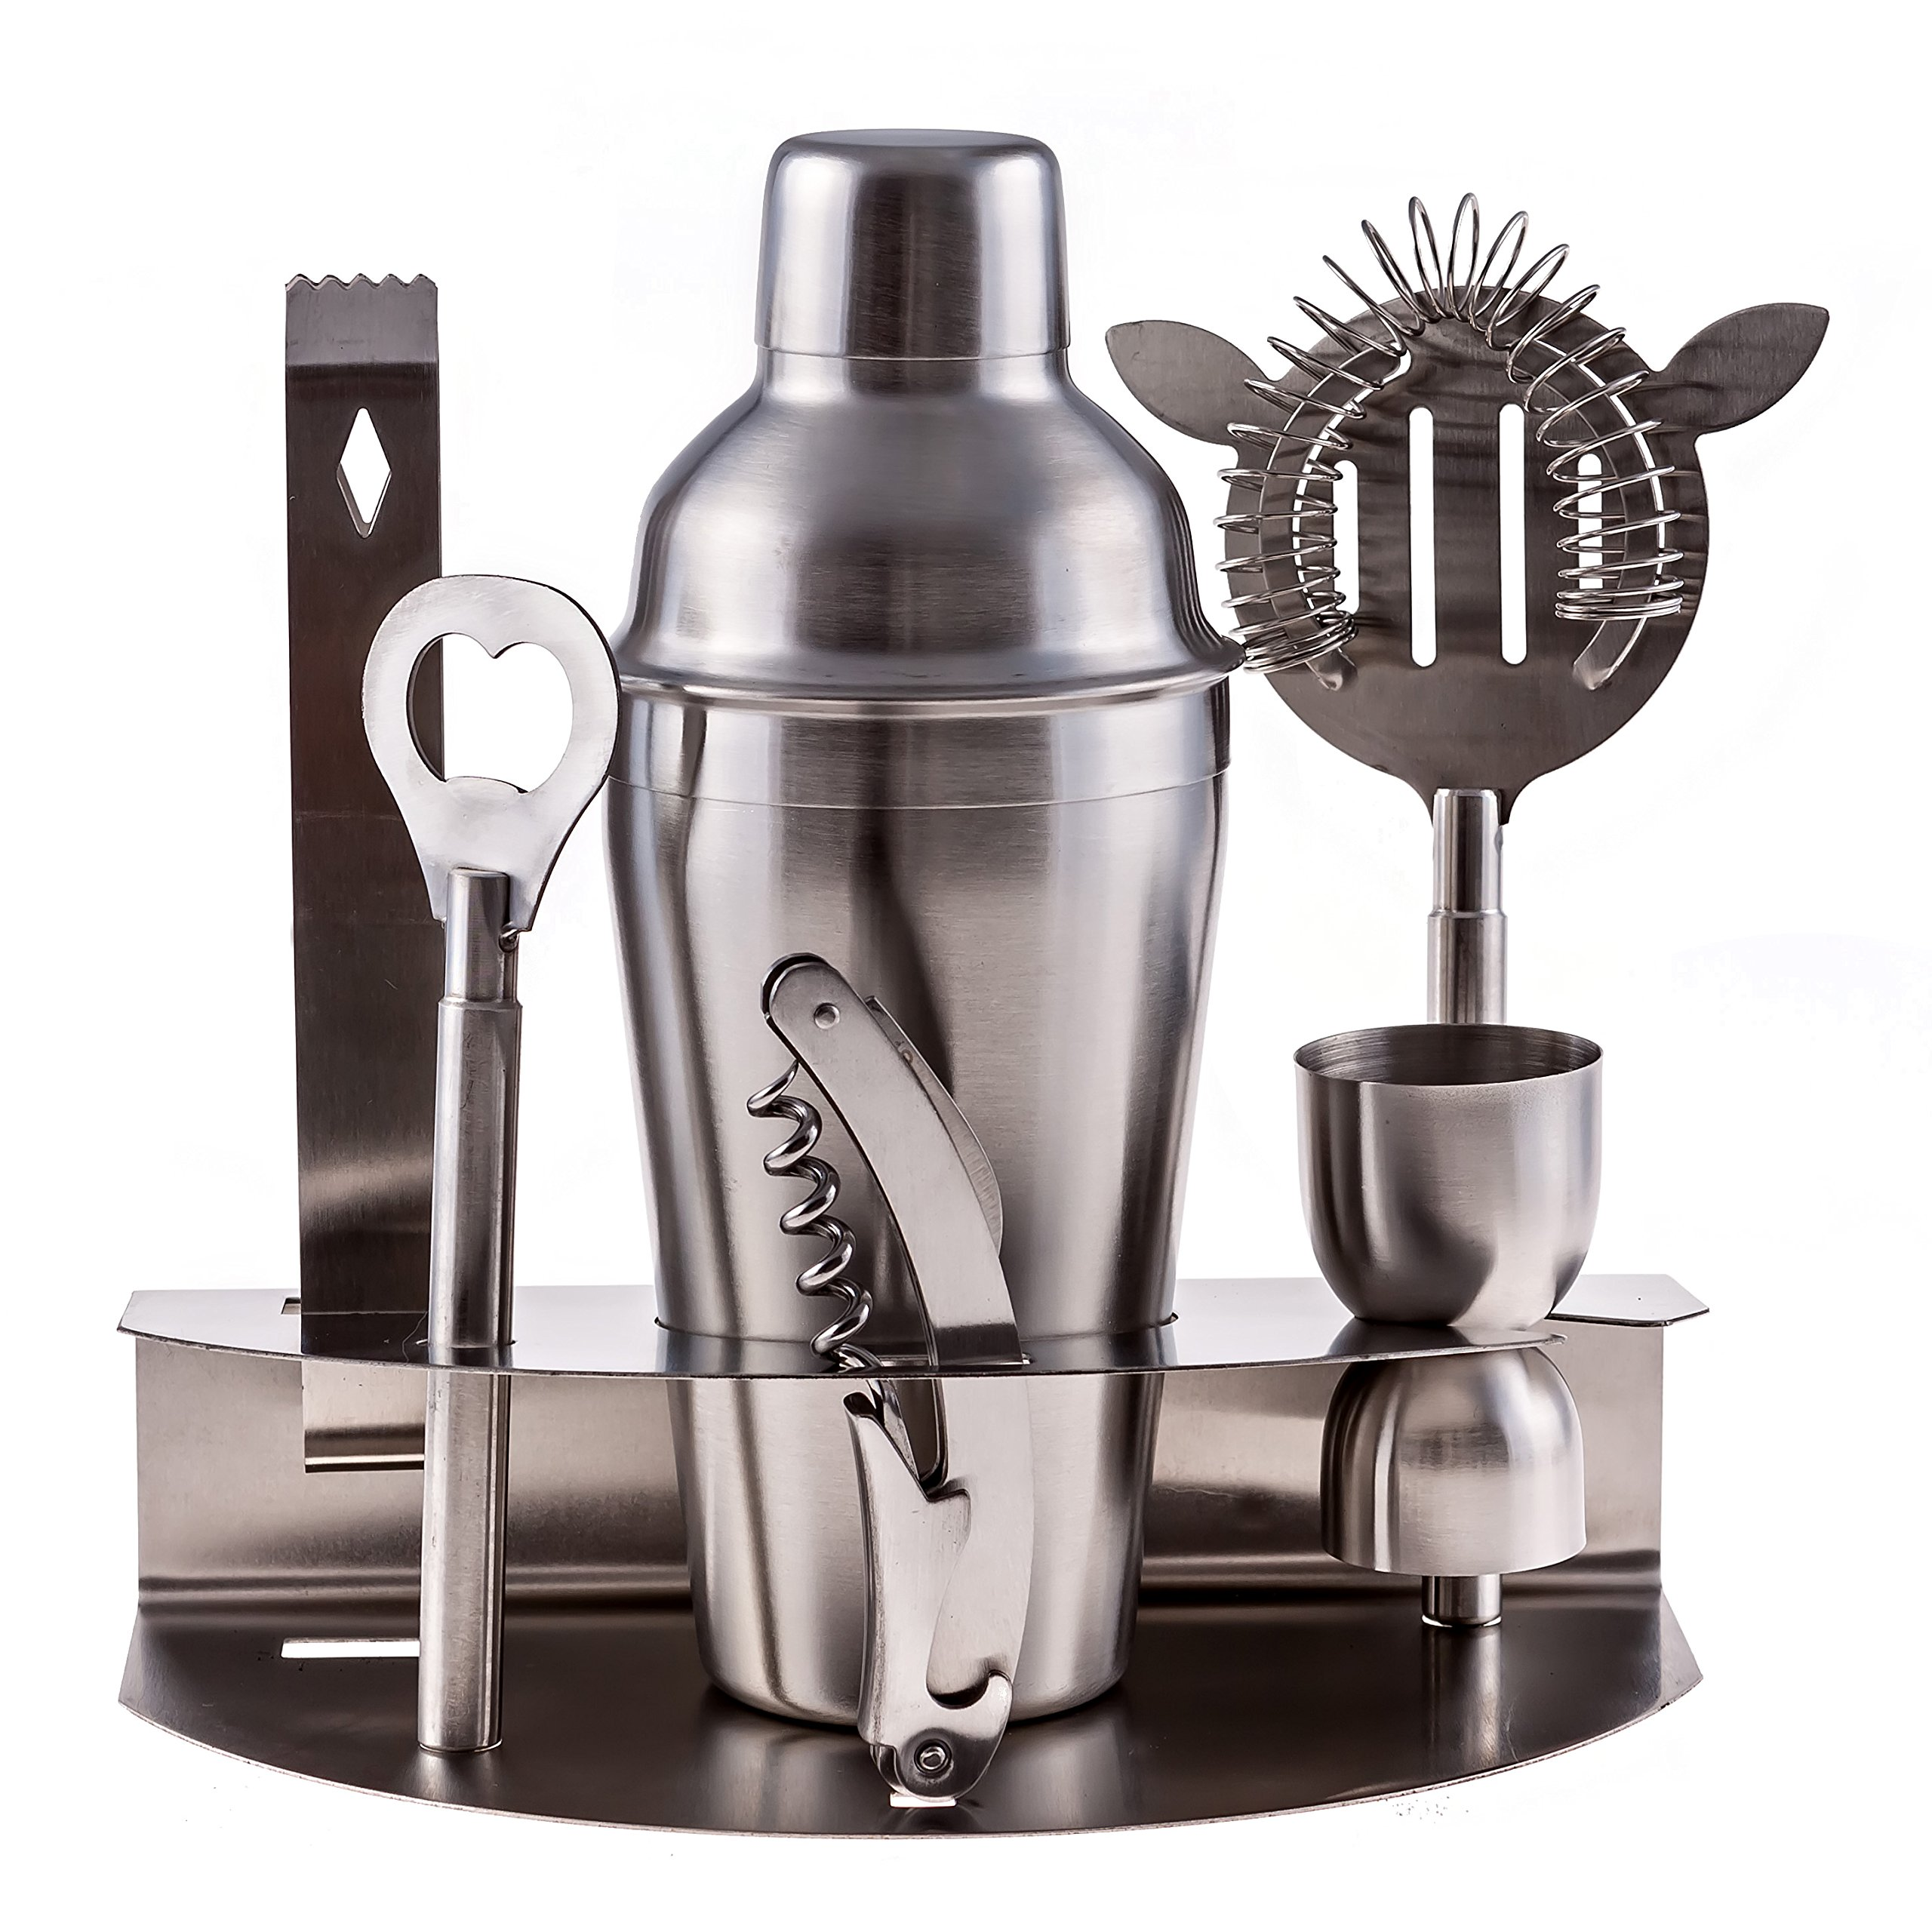 Bar Tool Set 100% Stainless Steel Bartender Martini Shaker Cocktail with Strainer Corkscrew Bottle Opener Jigger Ice Tongs and Storage Rack